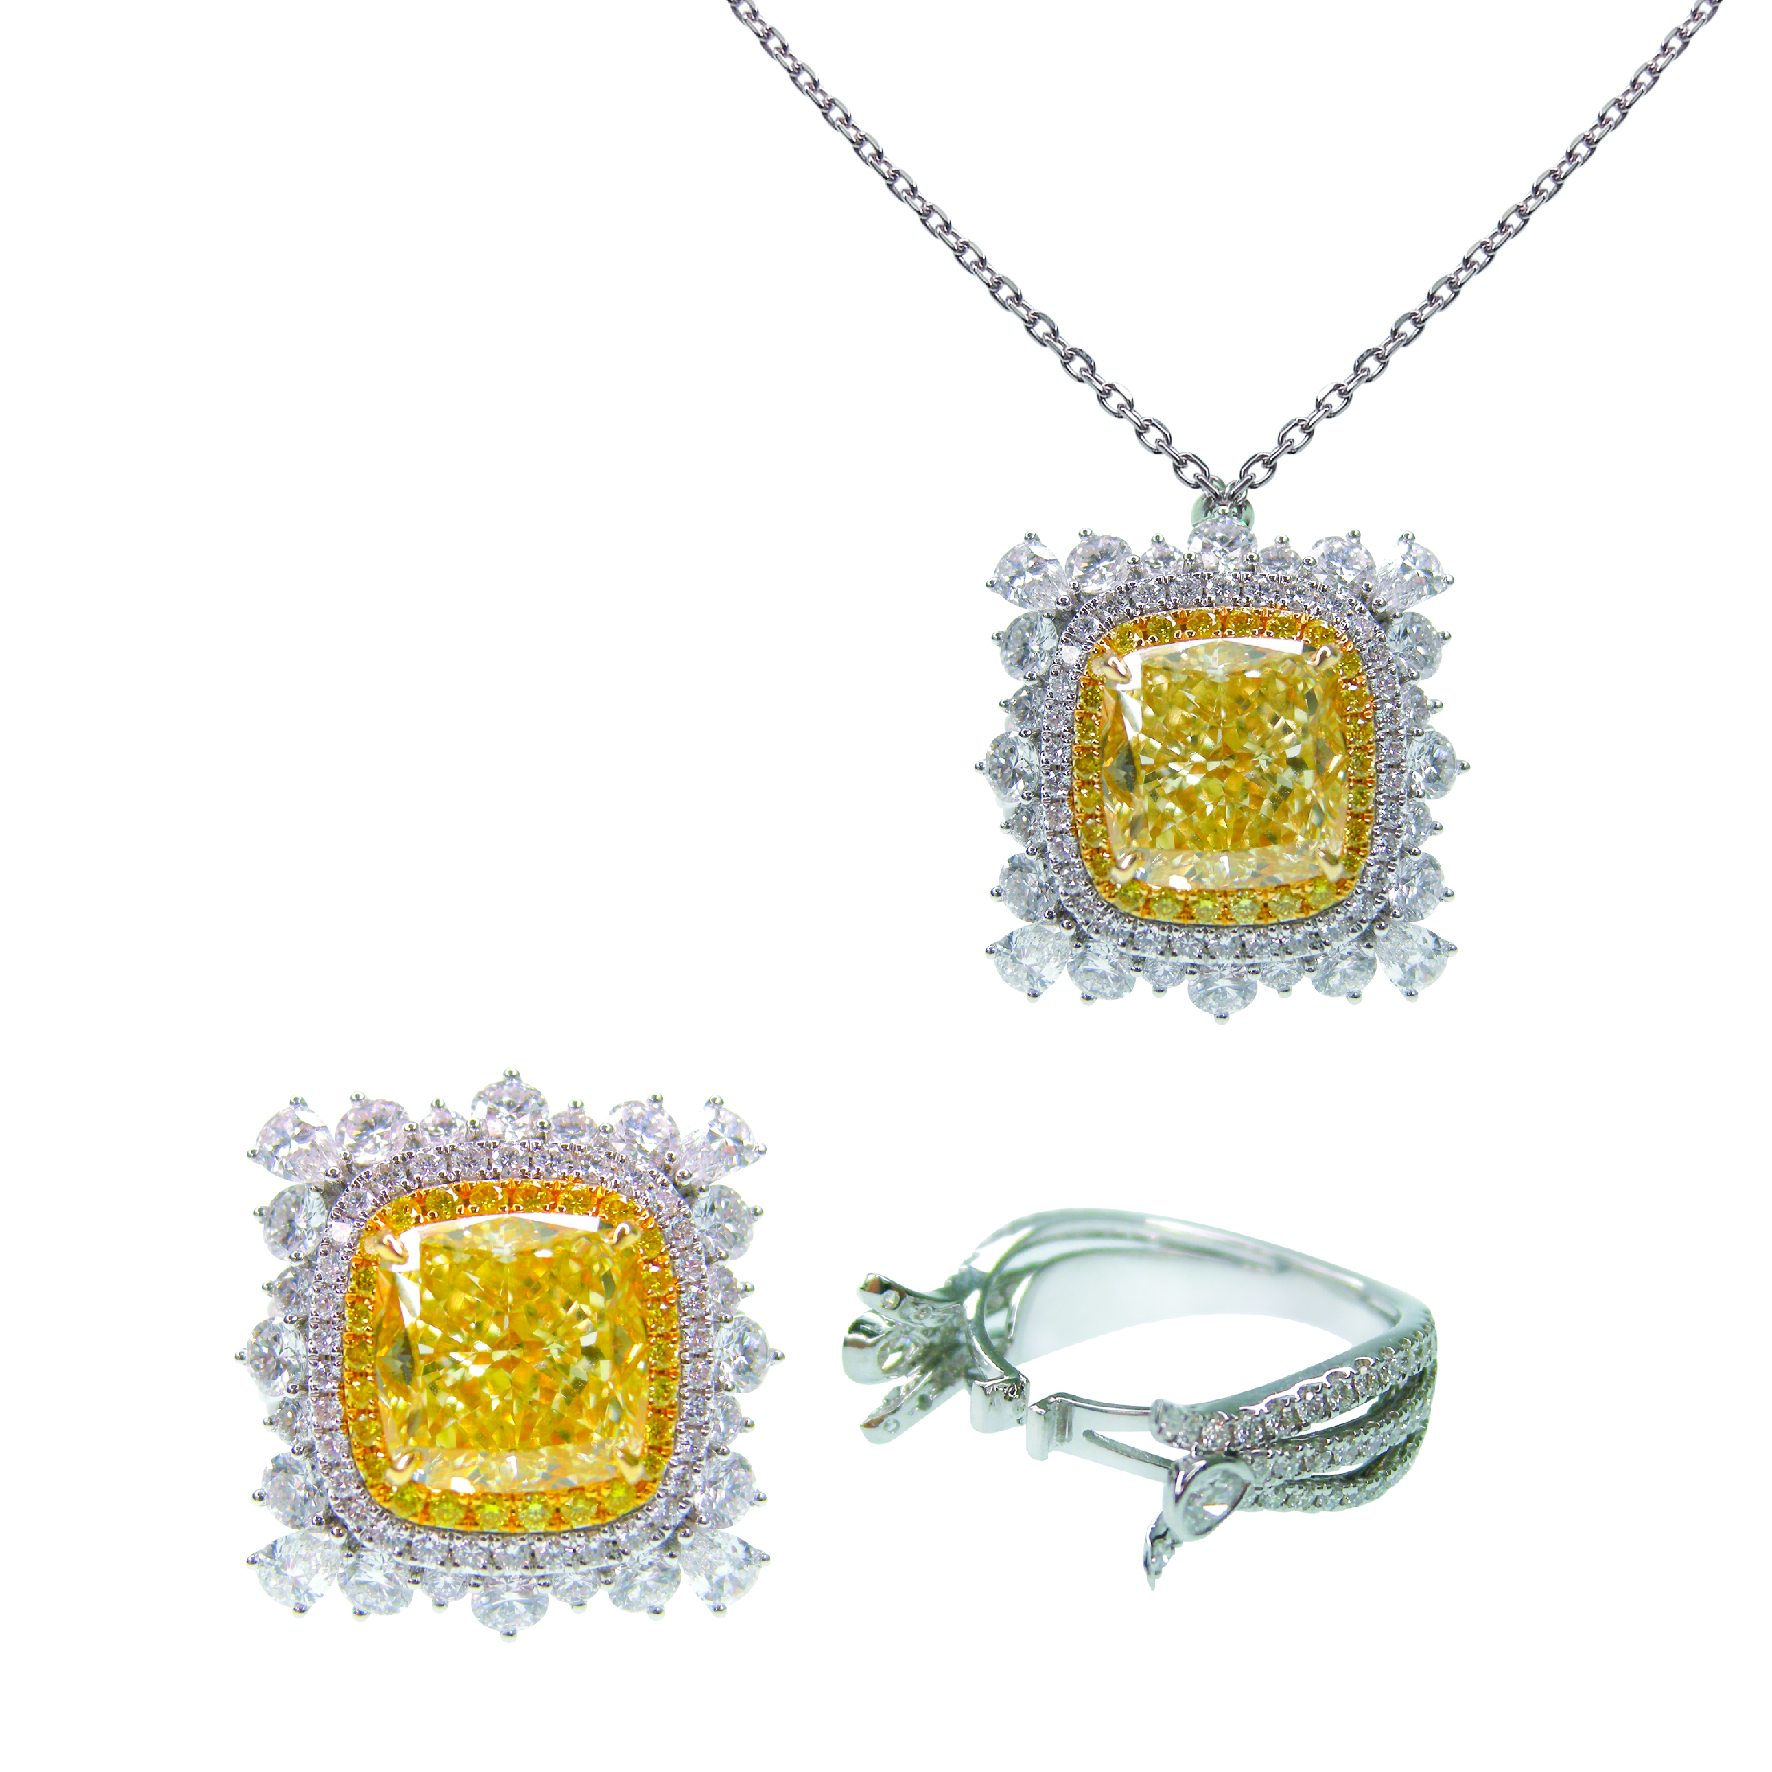 FANCY YELLOW DIAMOND RING AND NECKLACE VERSATILE TWO WAY BESPOKE FINE JEWELLERY BY SHAHINA HATTA HONG KONG